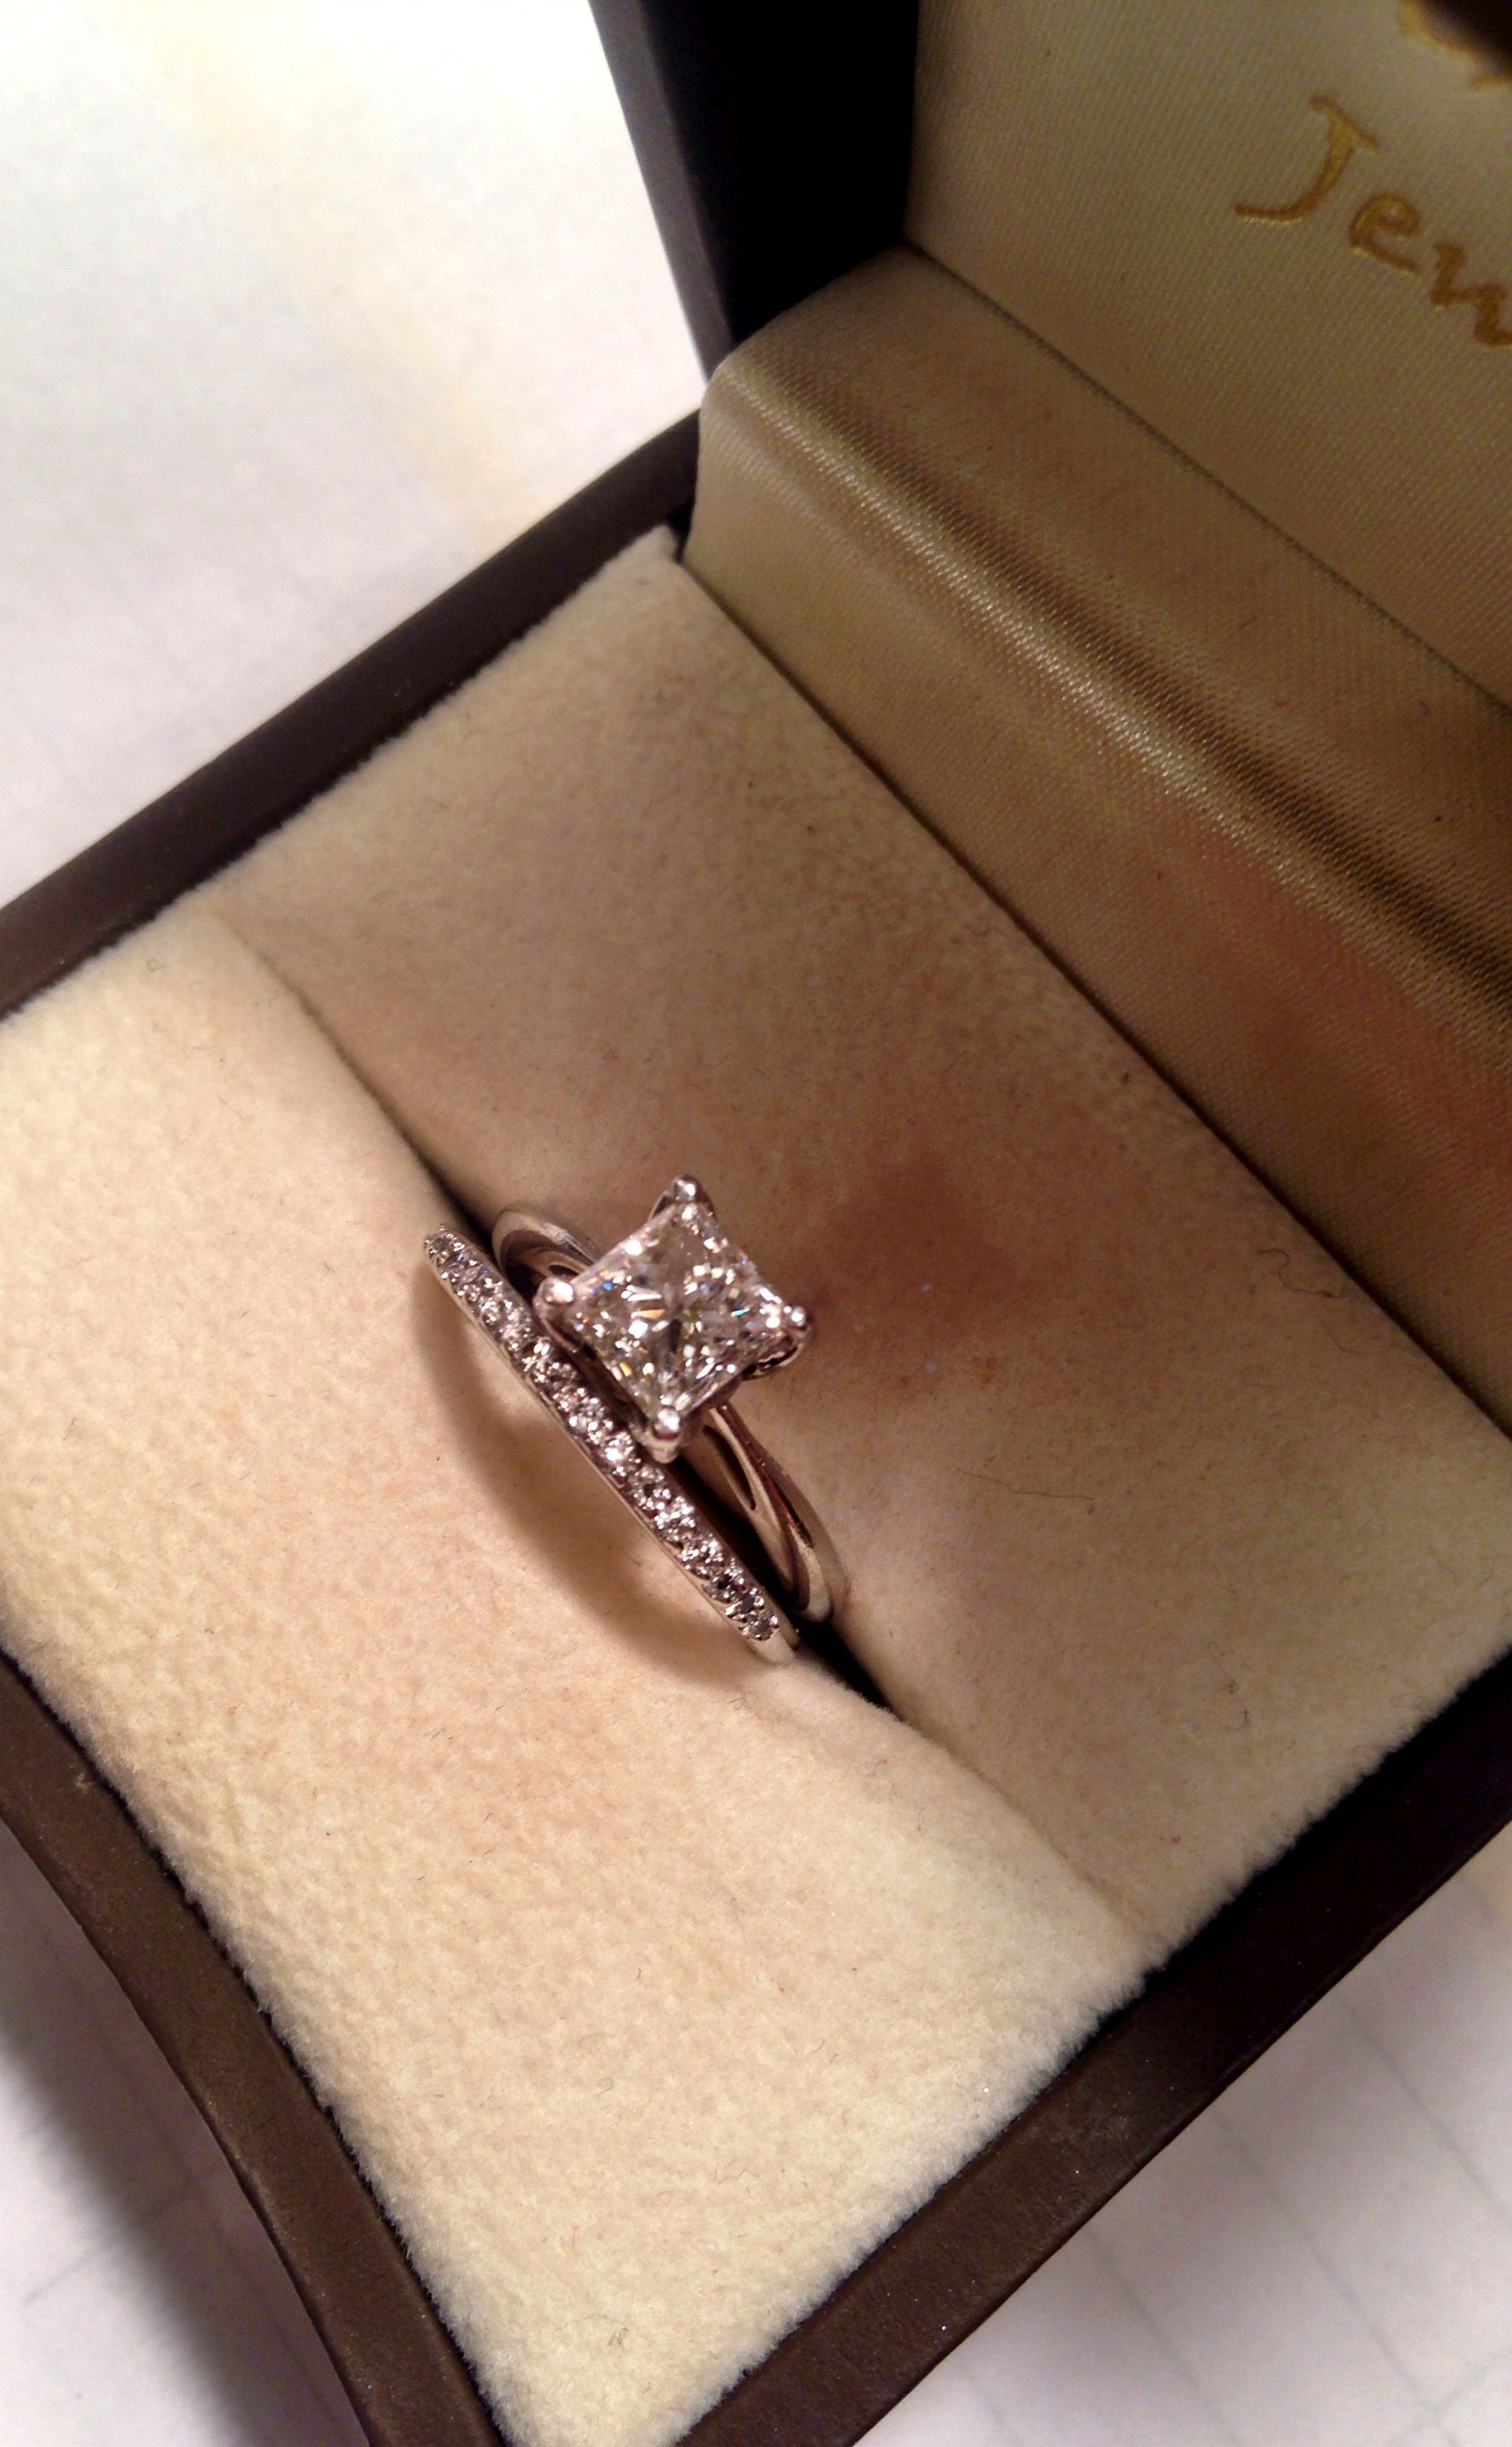 Solitaire Engagement Ring Princess Cut Diamond Wedding Band It S What I Want